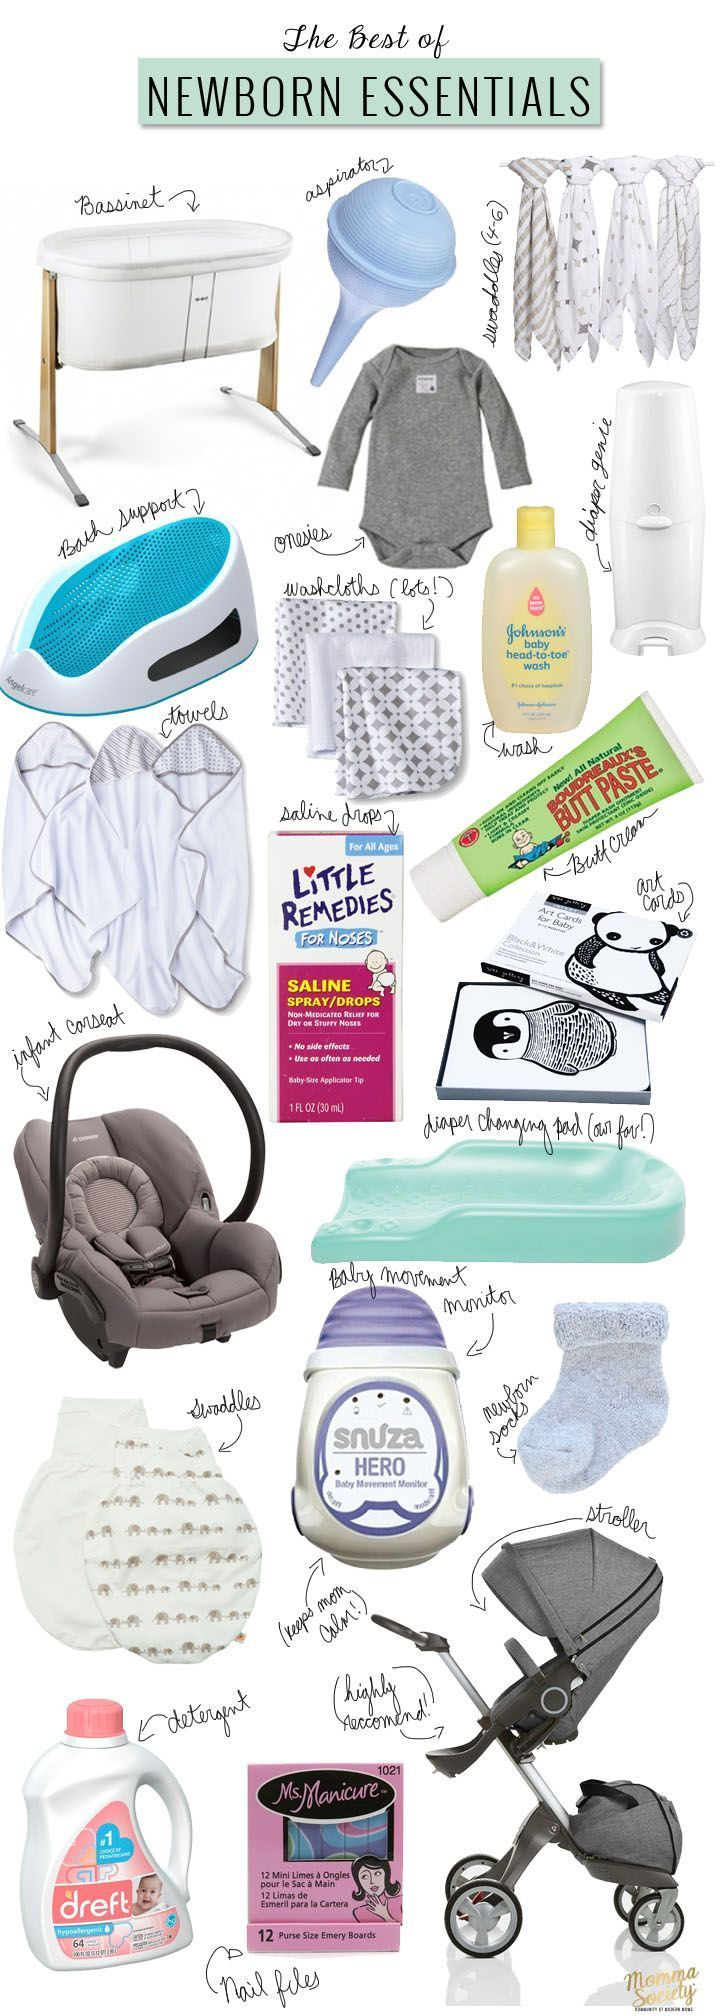 best Newborn Babies images on Pinterest  Babys New babies and